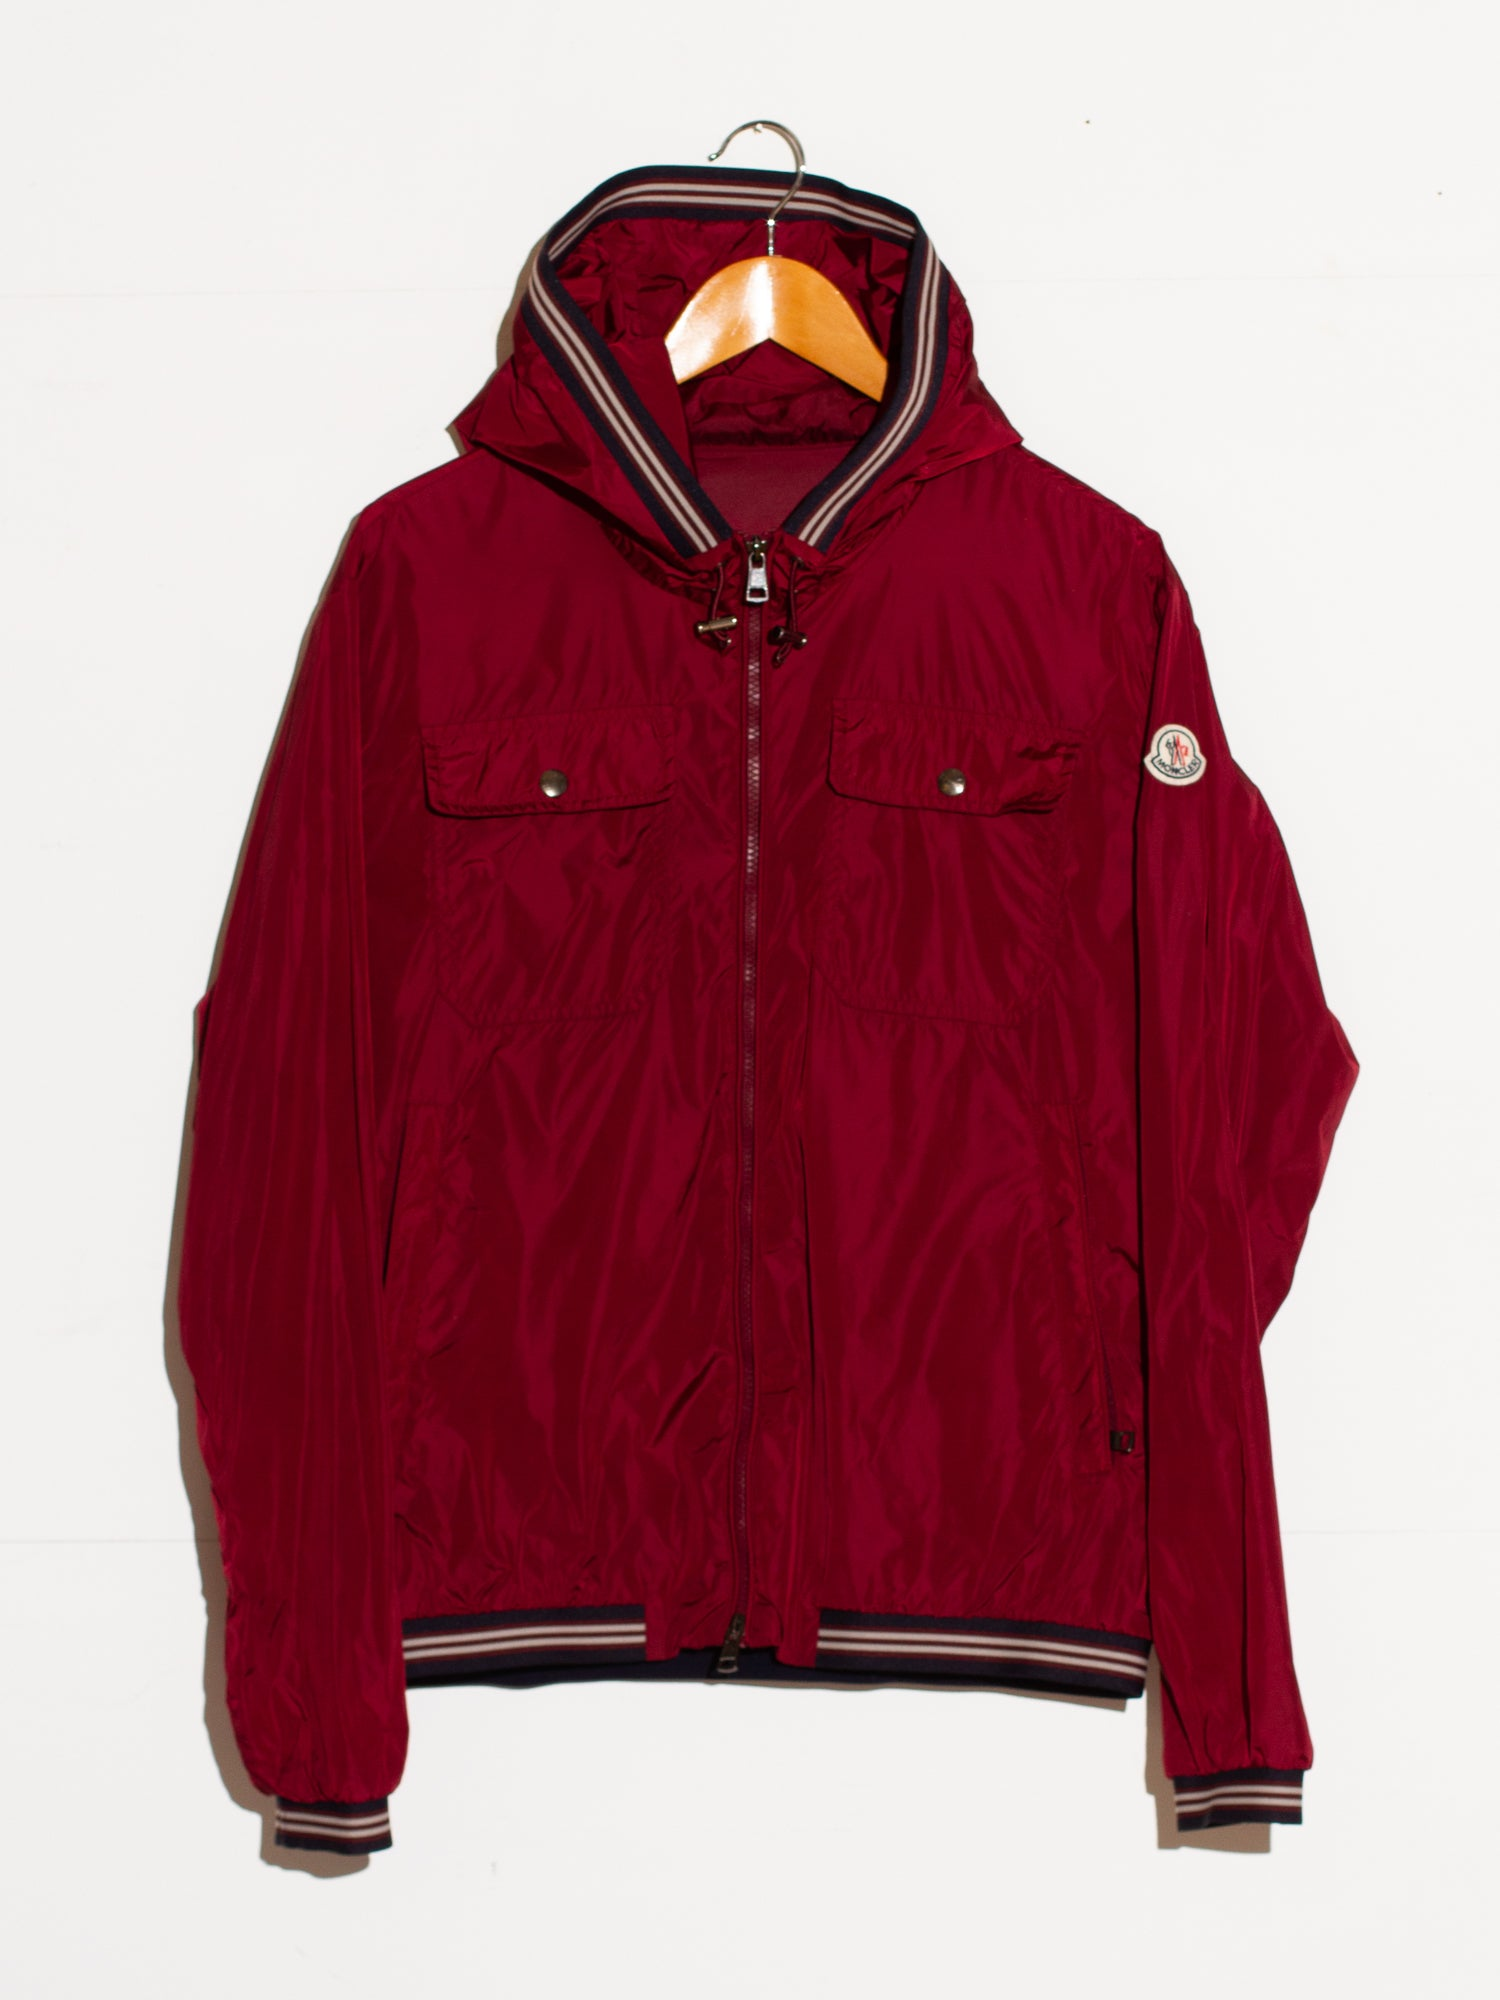 MONCLER JEAN CLAUDE HOODED WINDBREAKER